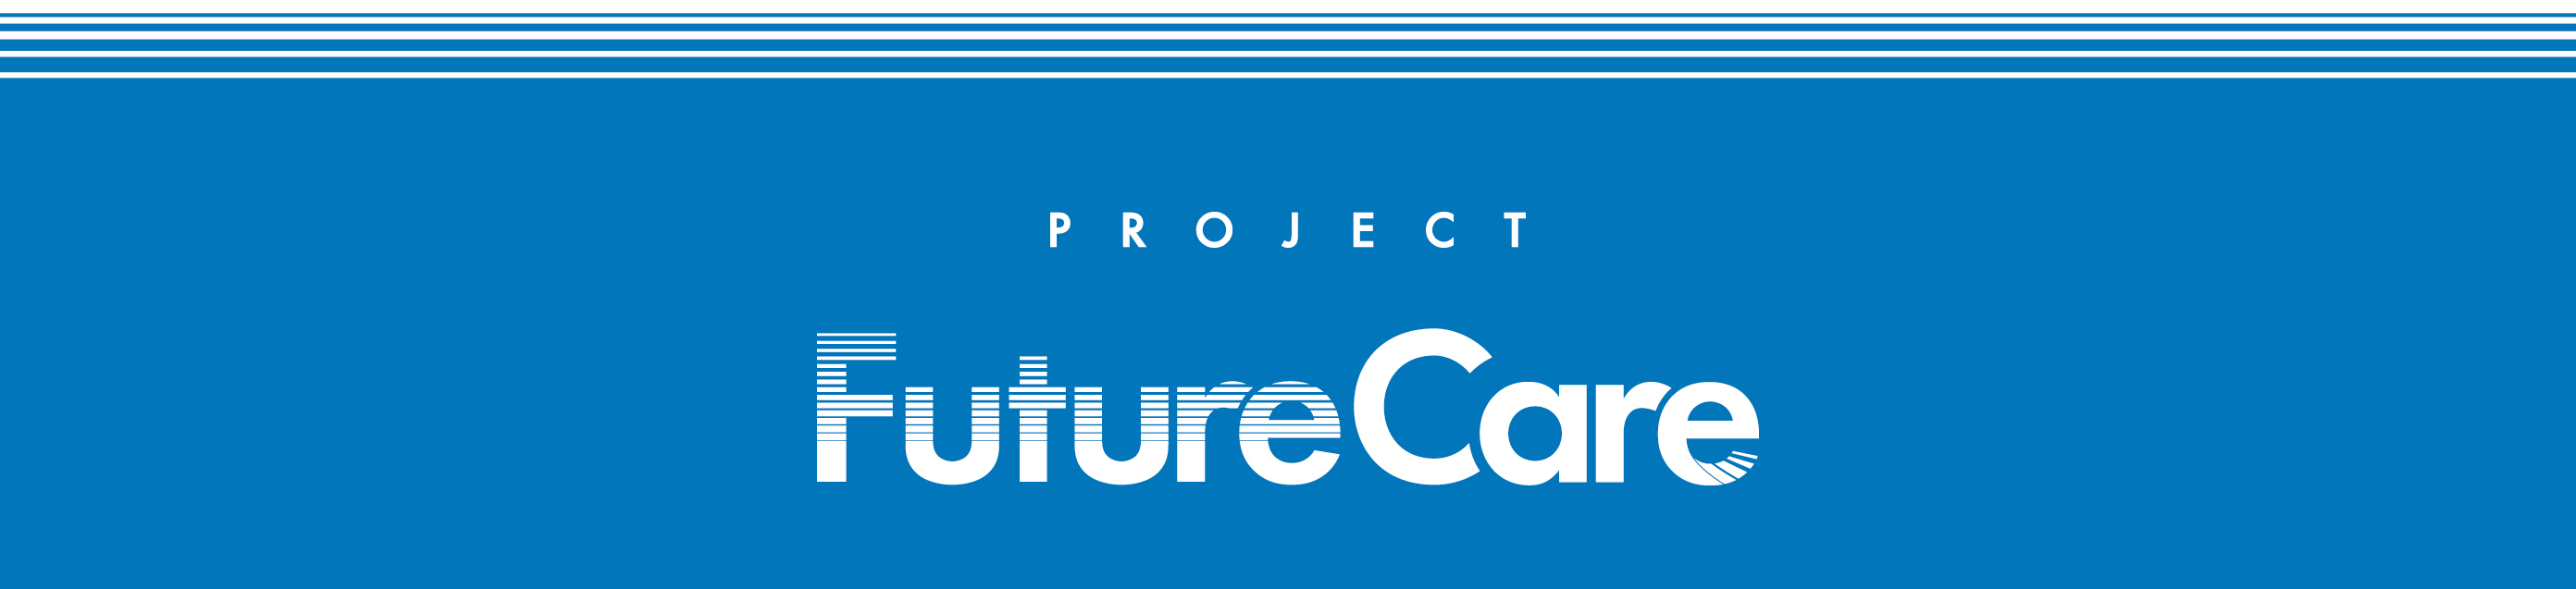 Project FutureCare banner graphic